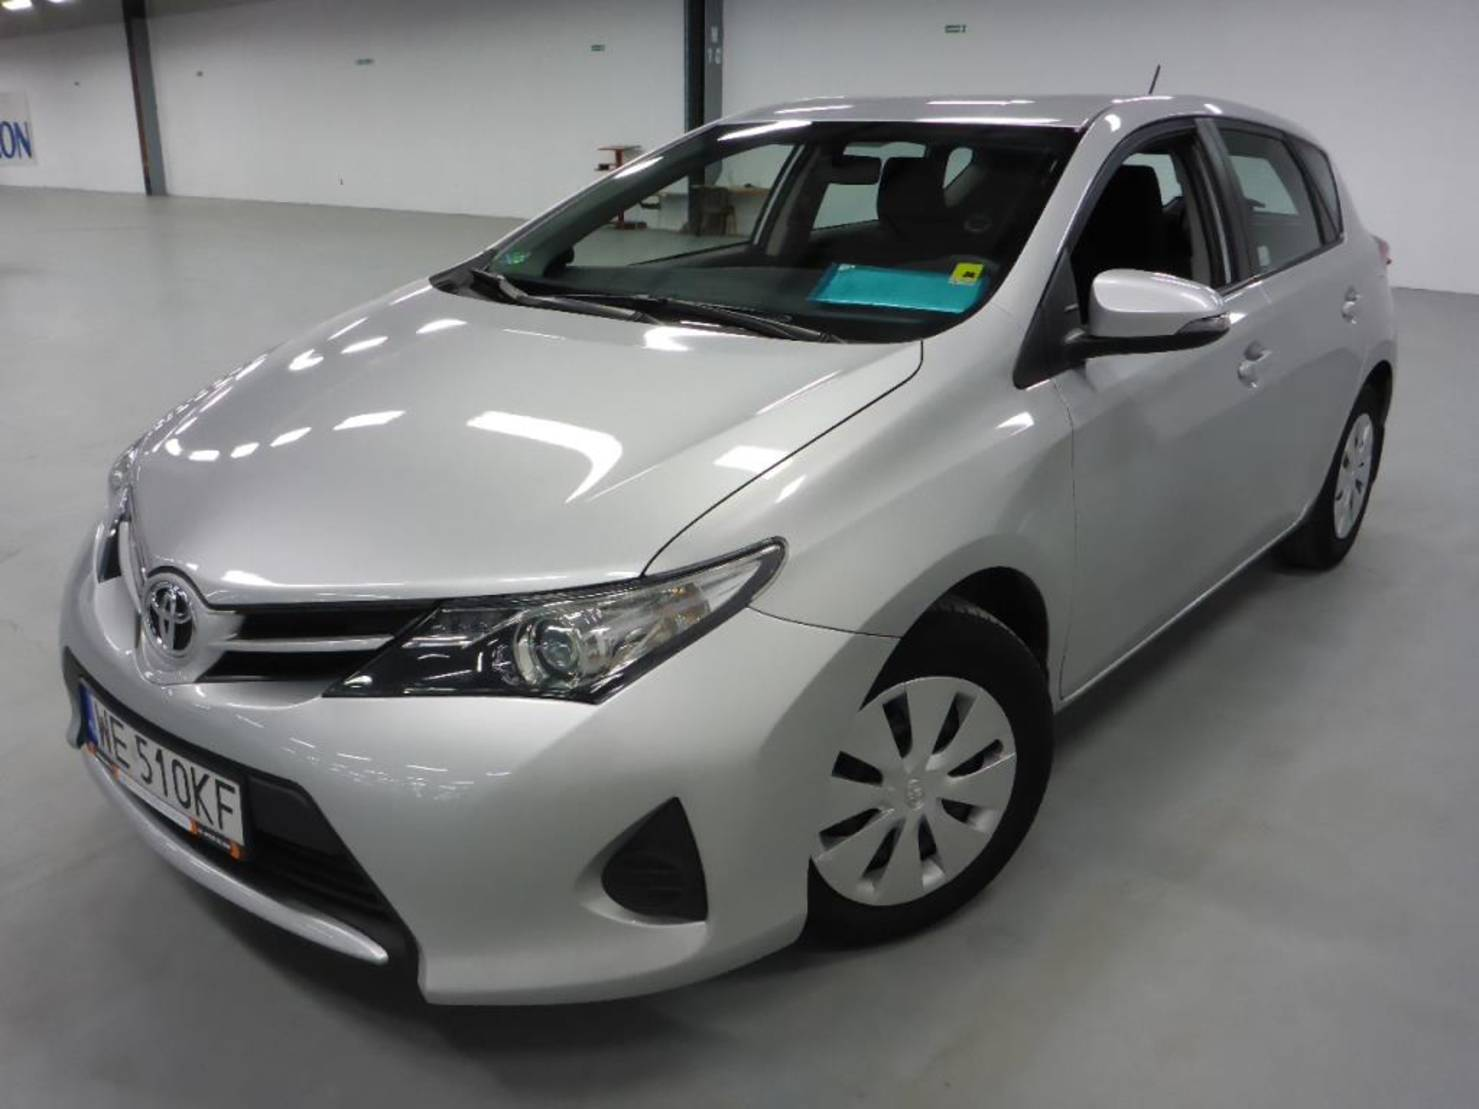 Toyota Auris 1.4 D-4d 90km Active Salon PL detail1